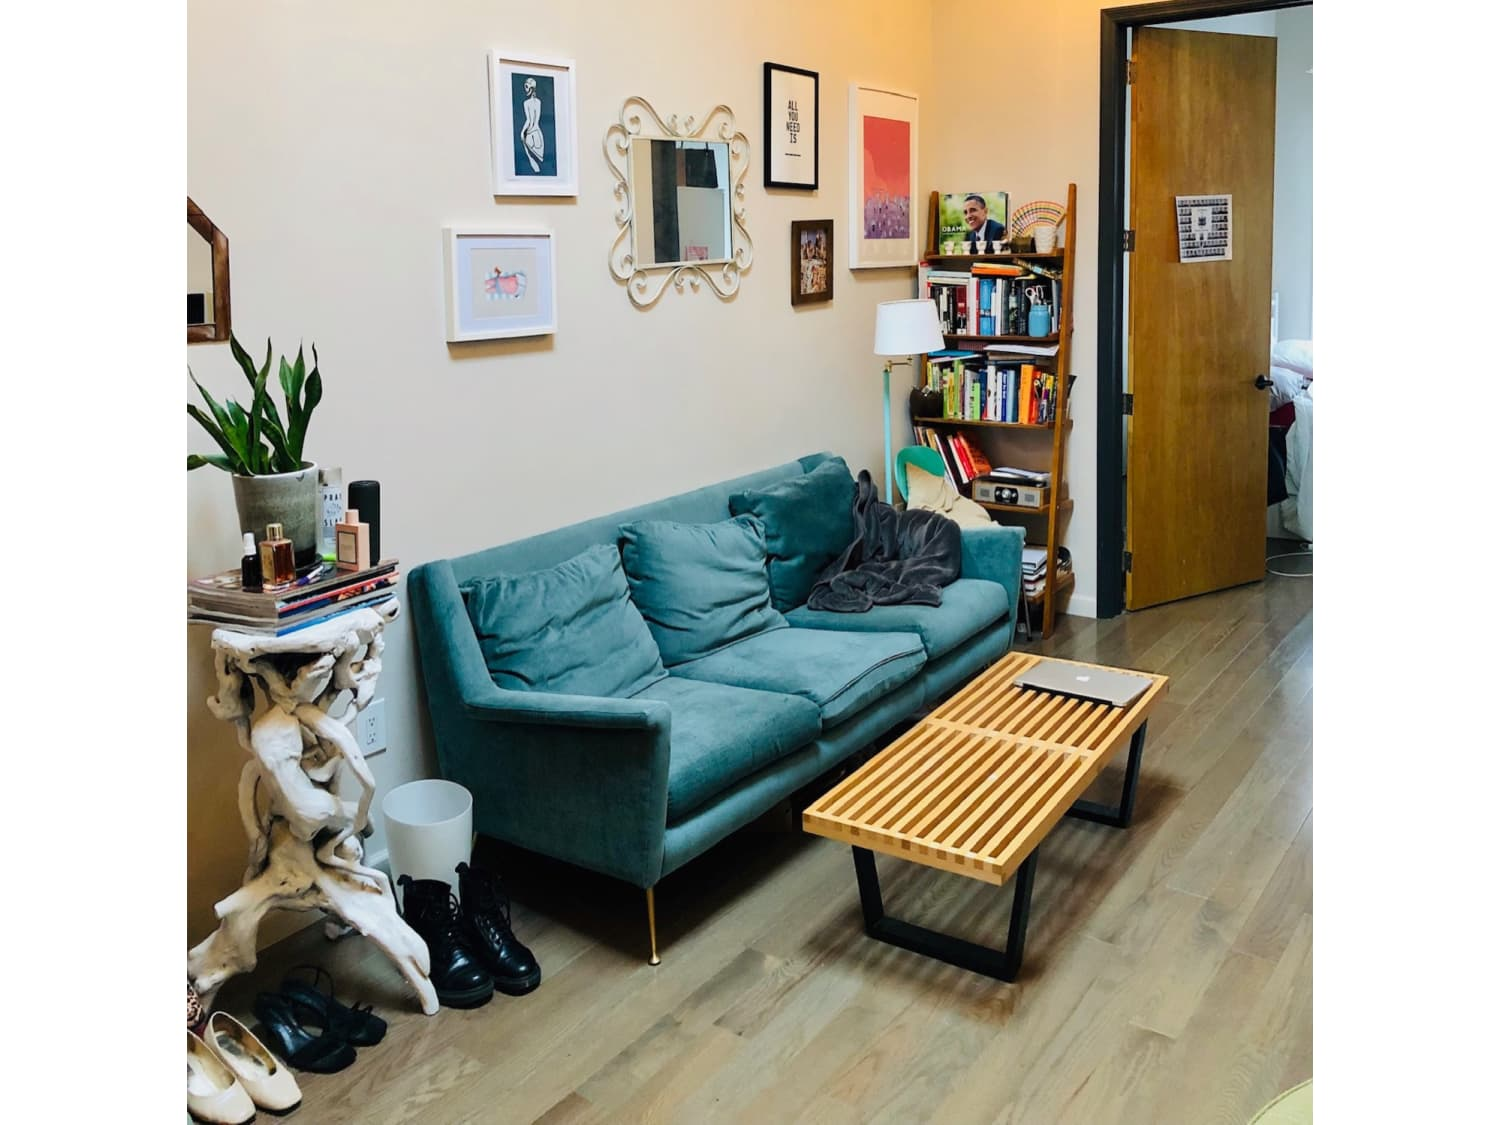 Apartment Therapy's Bazaar